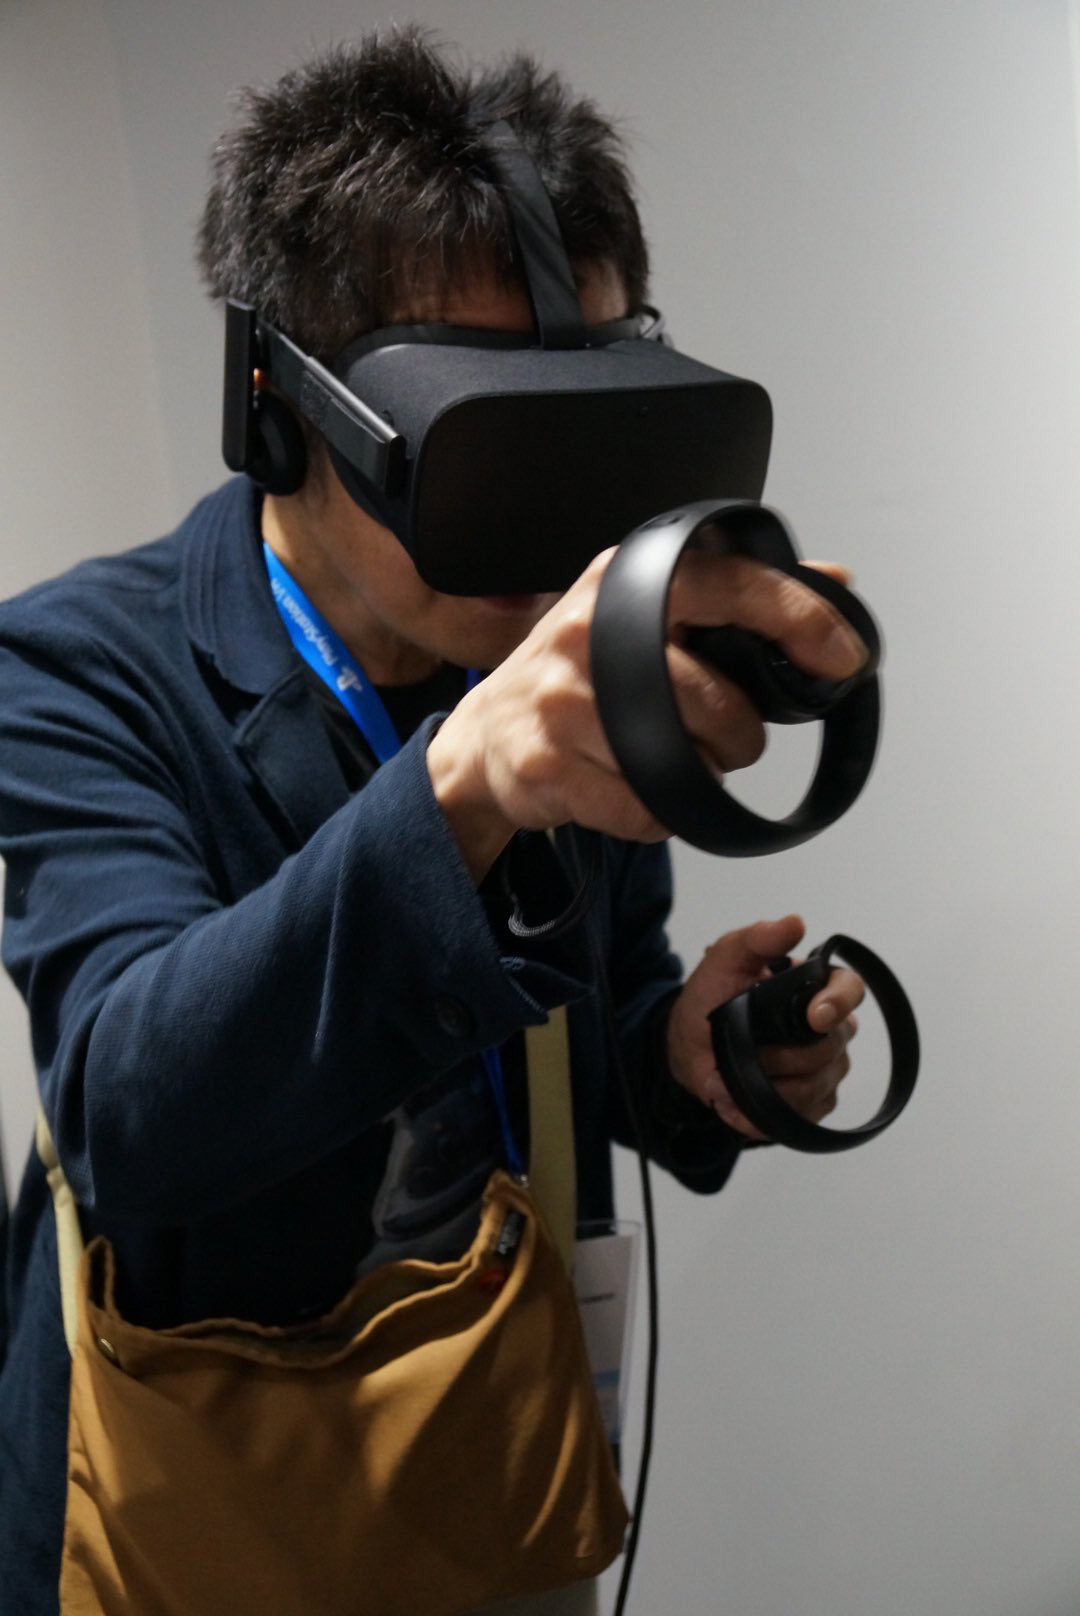 Kenji-Yano-playing-Oculus-Rift-at-E3-2016-2